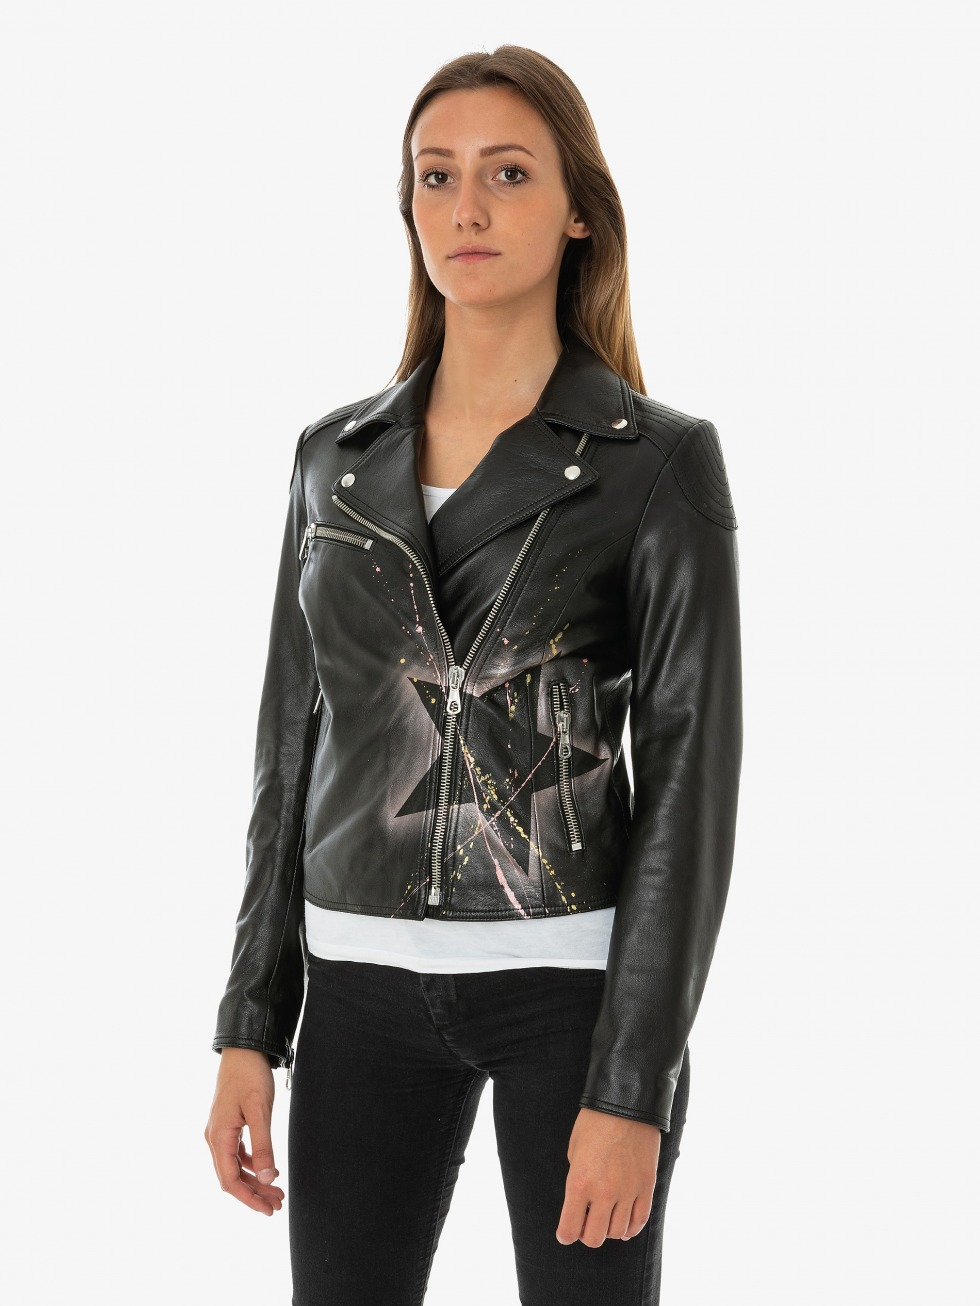 Agata Black Bomber - Quartz Star & Heart